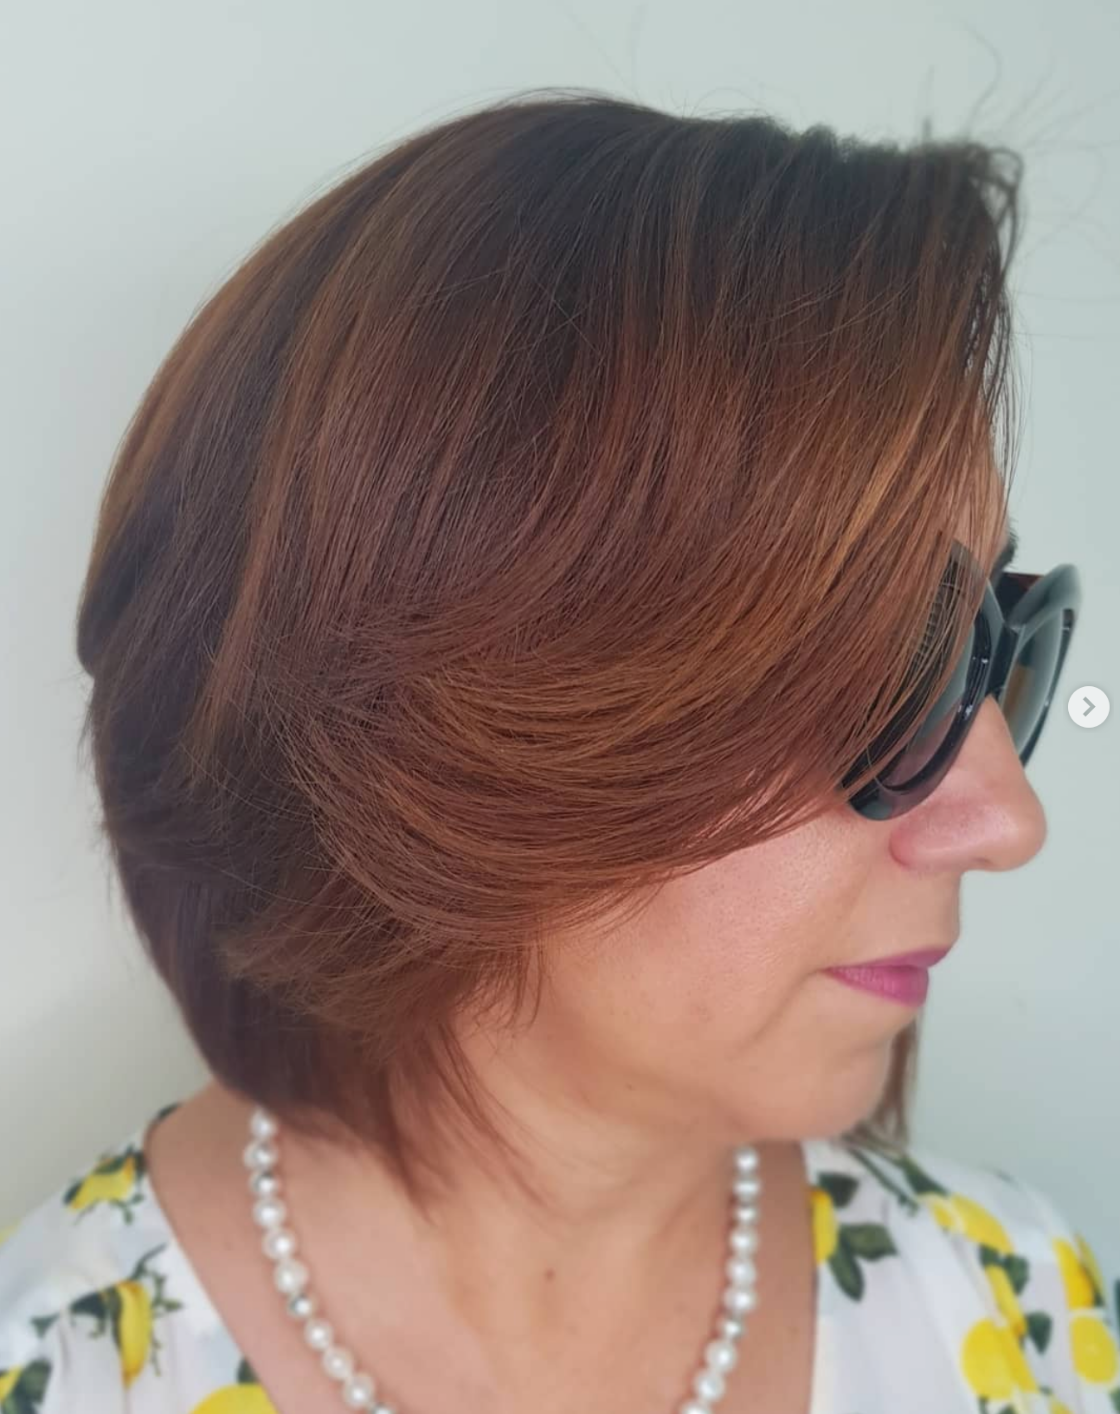 Short bob styles thatull make you go for the chop related keywords